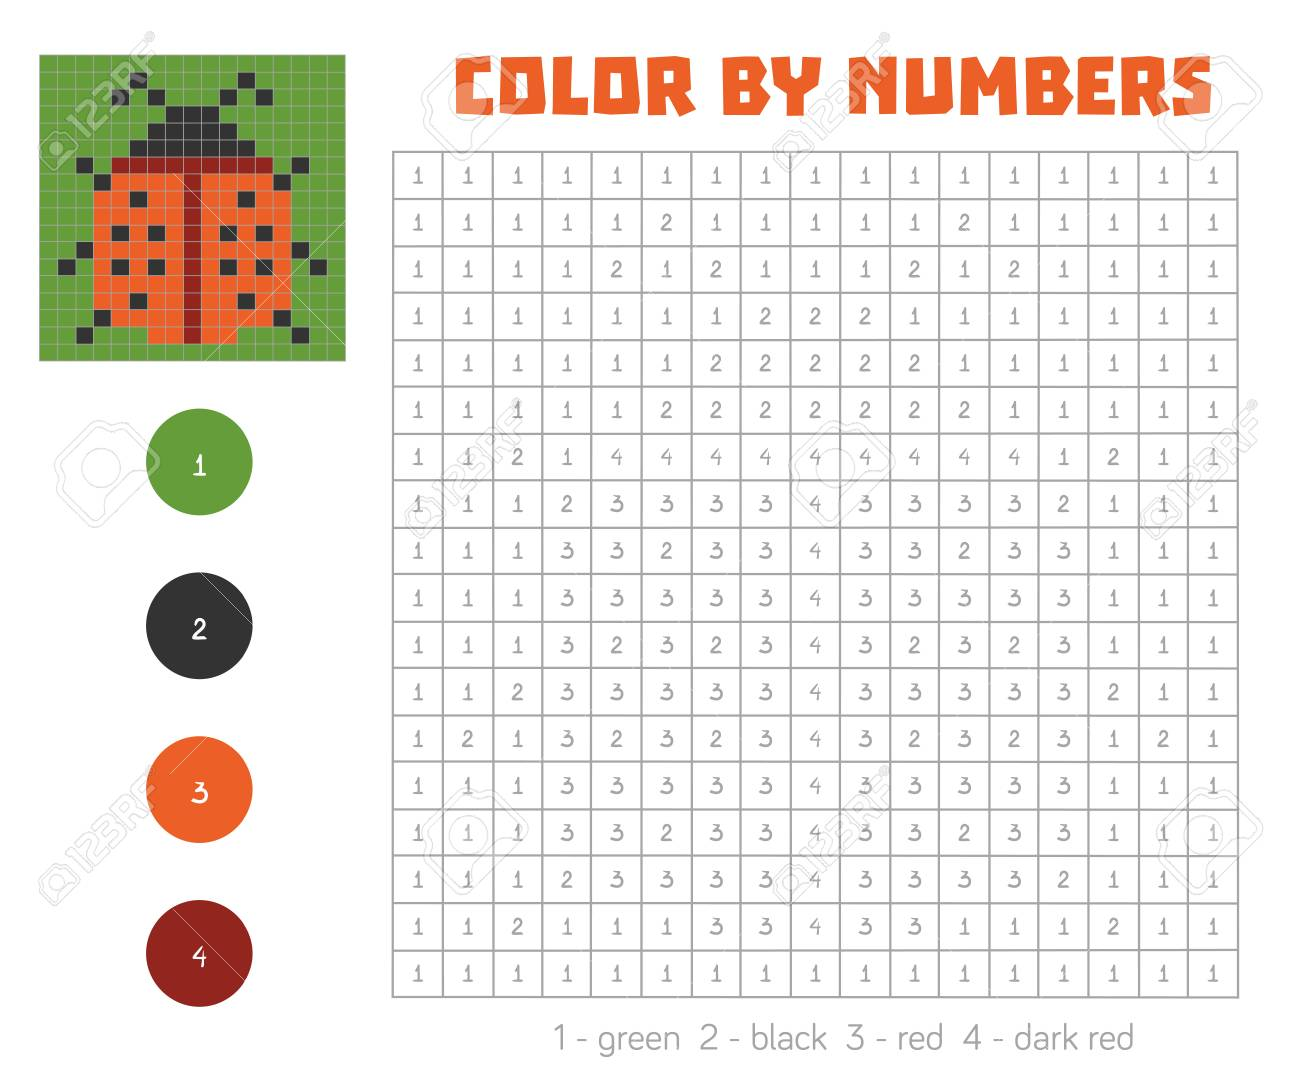 Color By Number Education Game For Children Coloring Book With Royalty Free Cliparts Vectors And Stock Illustration Image 62153372